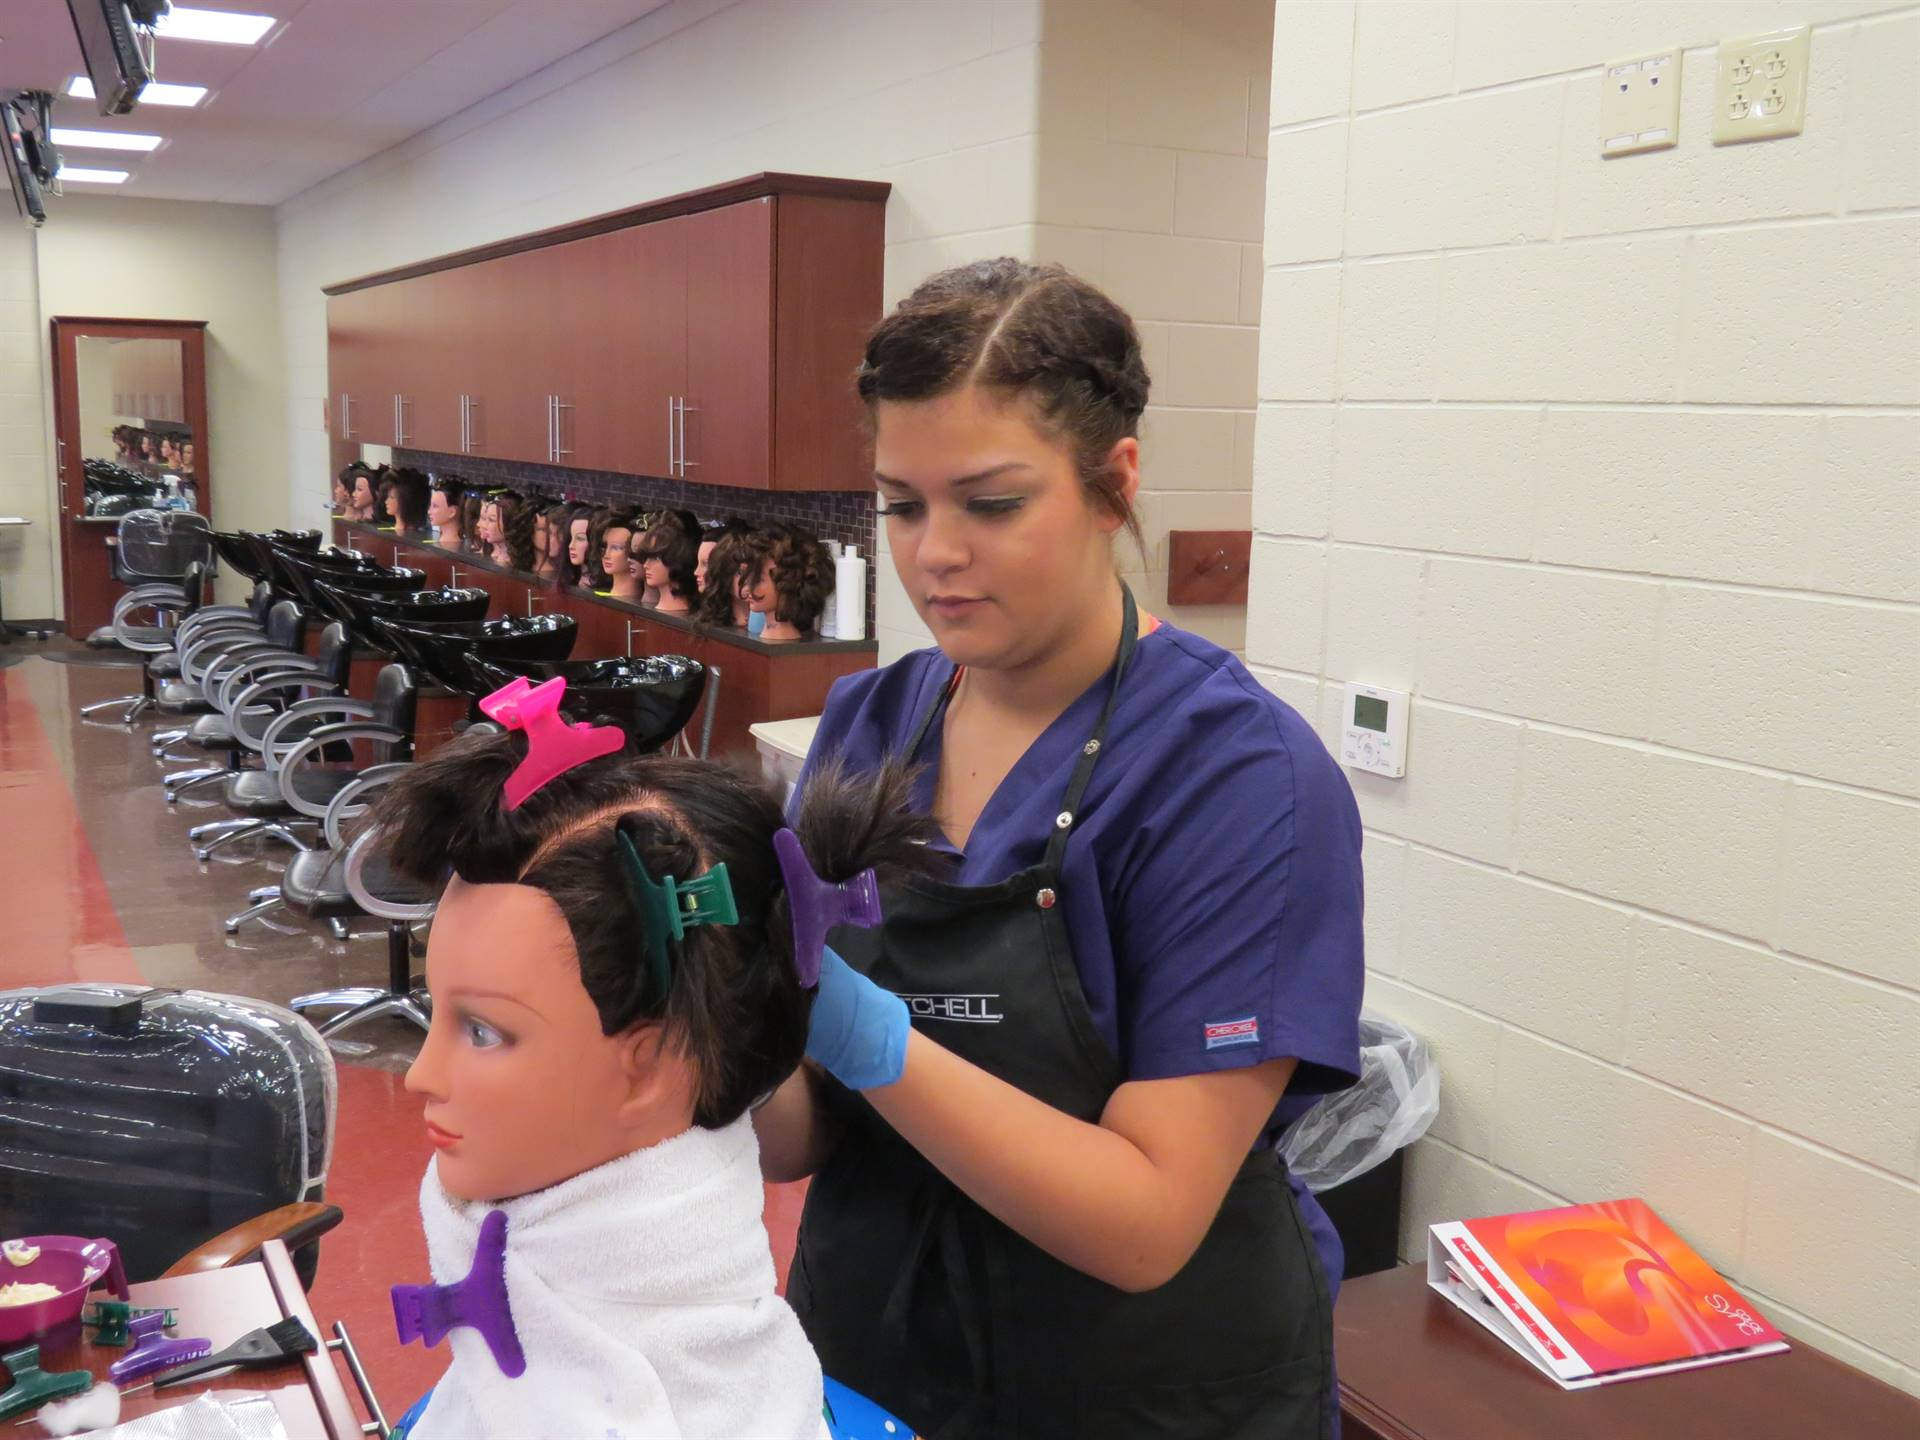 Female cosmetology student working on a mannequin's hair